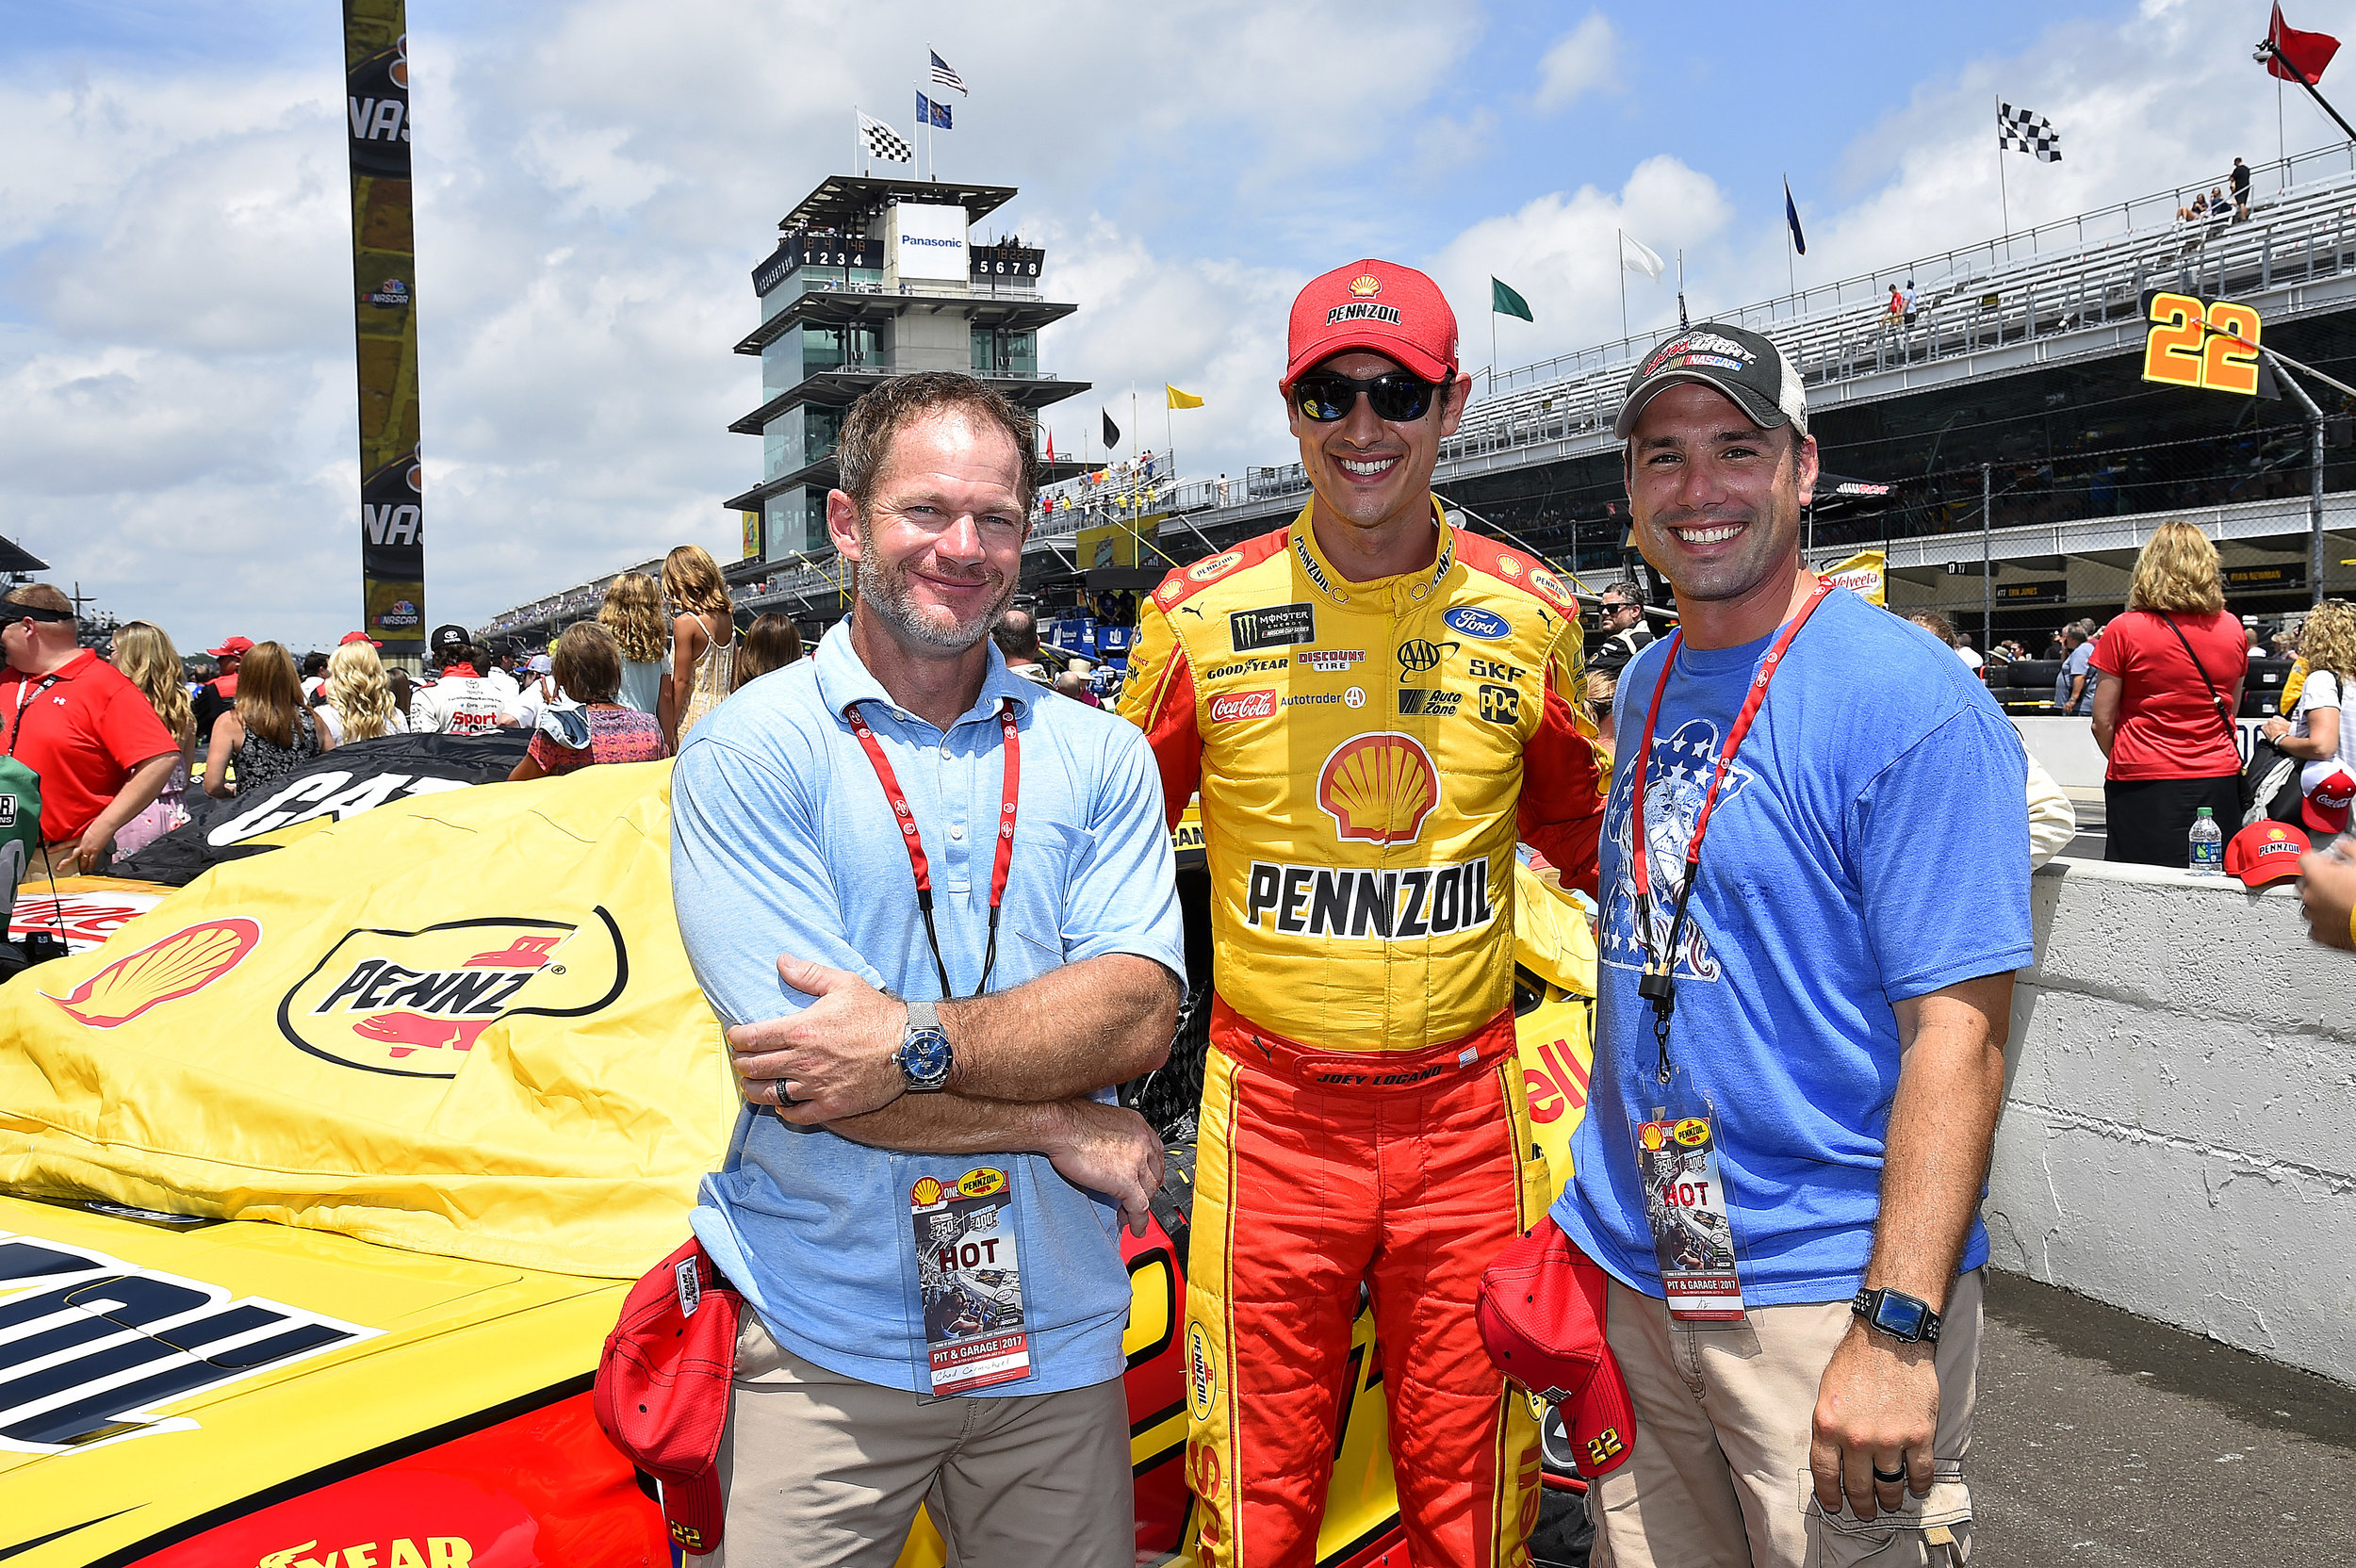 NASCAR driver Joey Logano with guests of The Best Seat in the House experience at Indianapolis Motor Speedway.